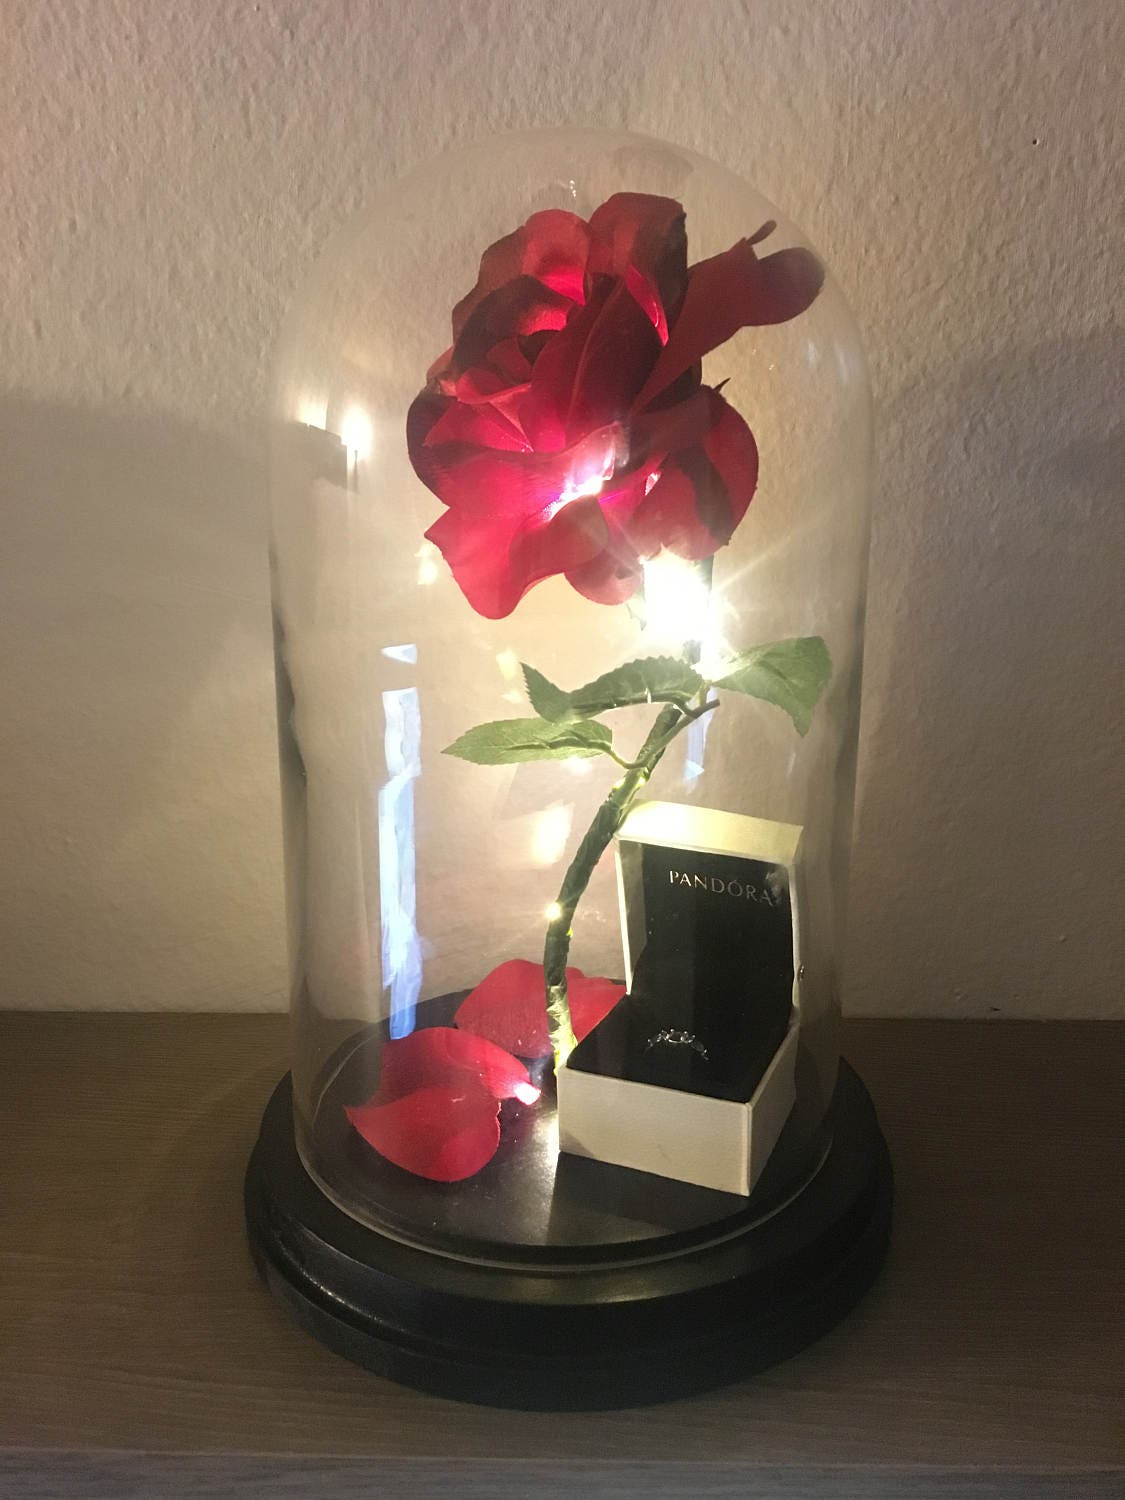 Beauty and the Beast Rose Enchanted Rose Rose in Glass Dome